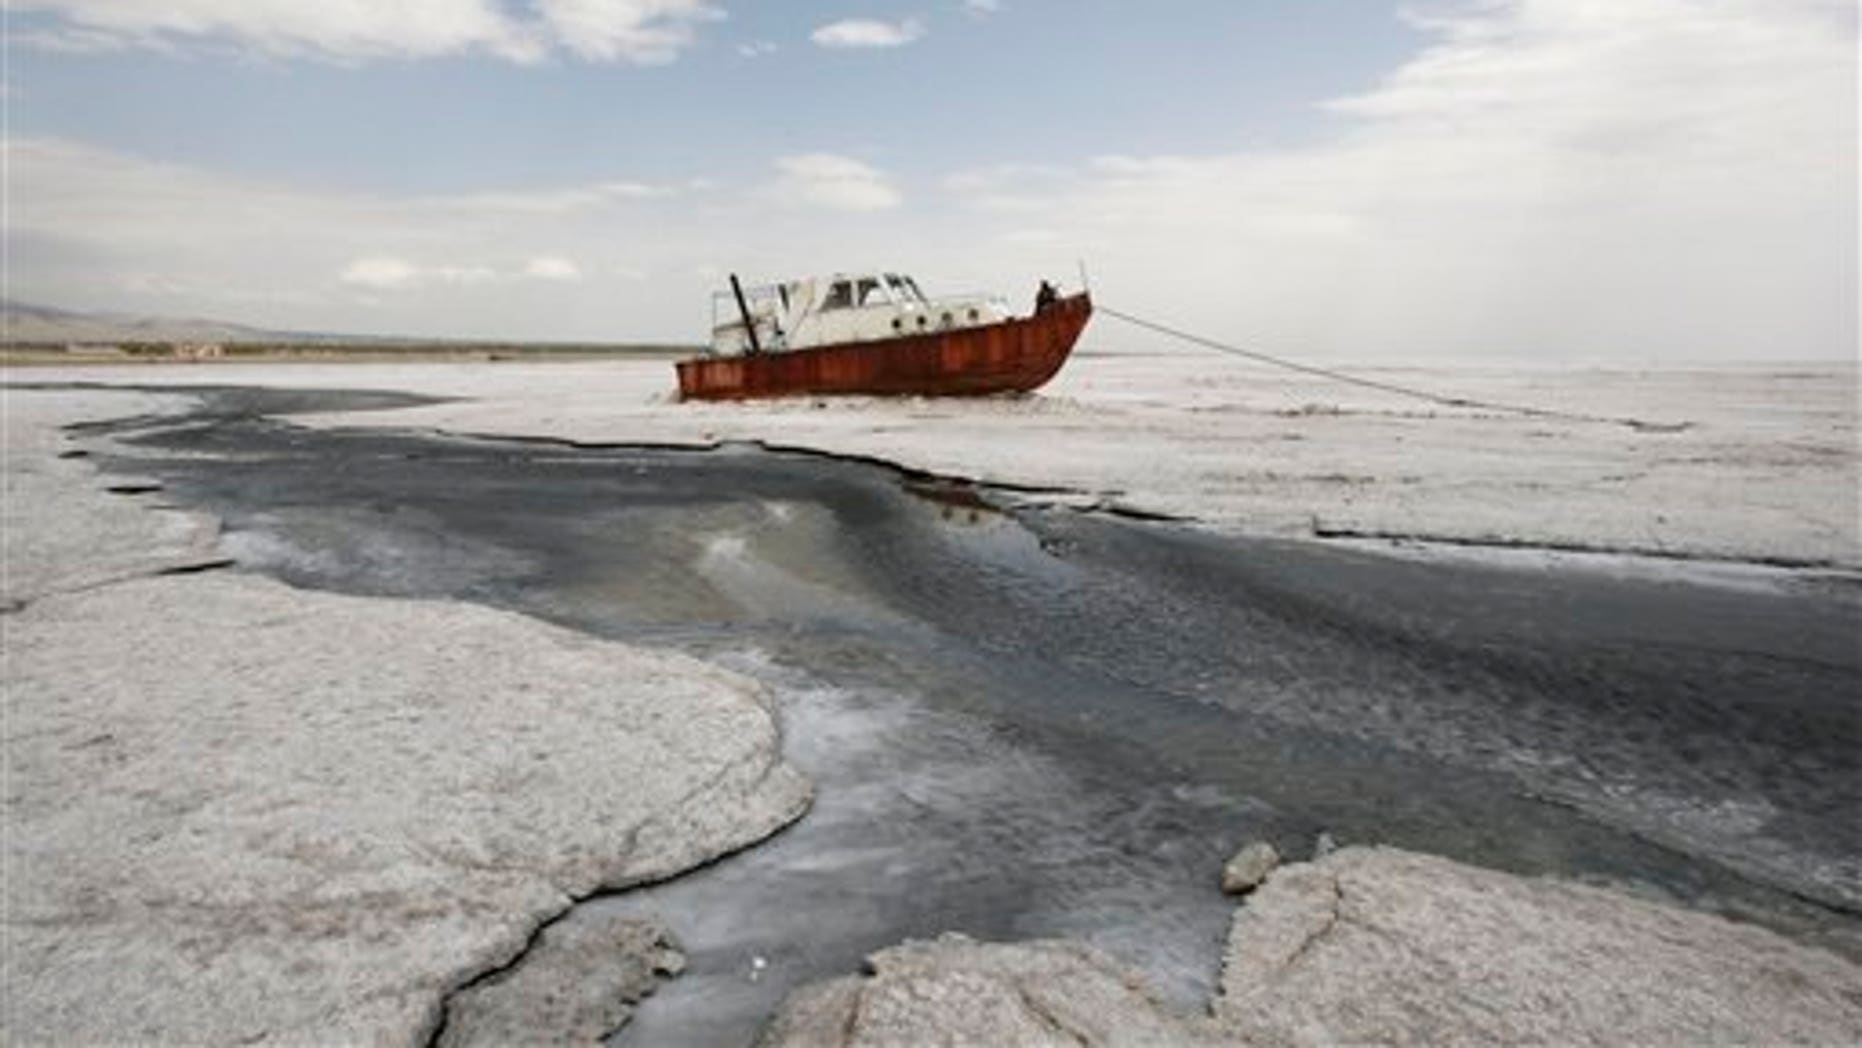 April 29: An abandoned boat is stuck in the solidified salts of the Oroumieh Lake, some 370 miles northwest of the capital Tehran, Iran.